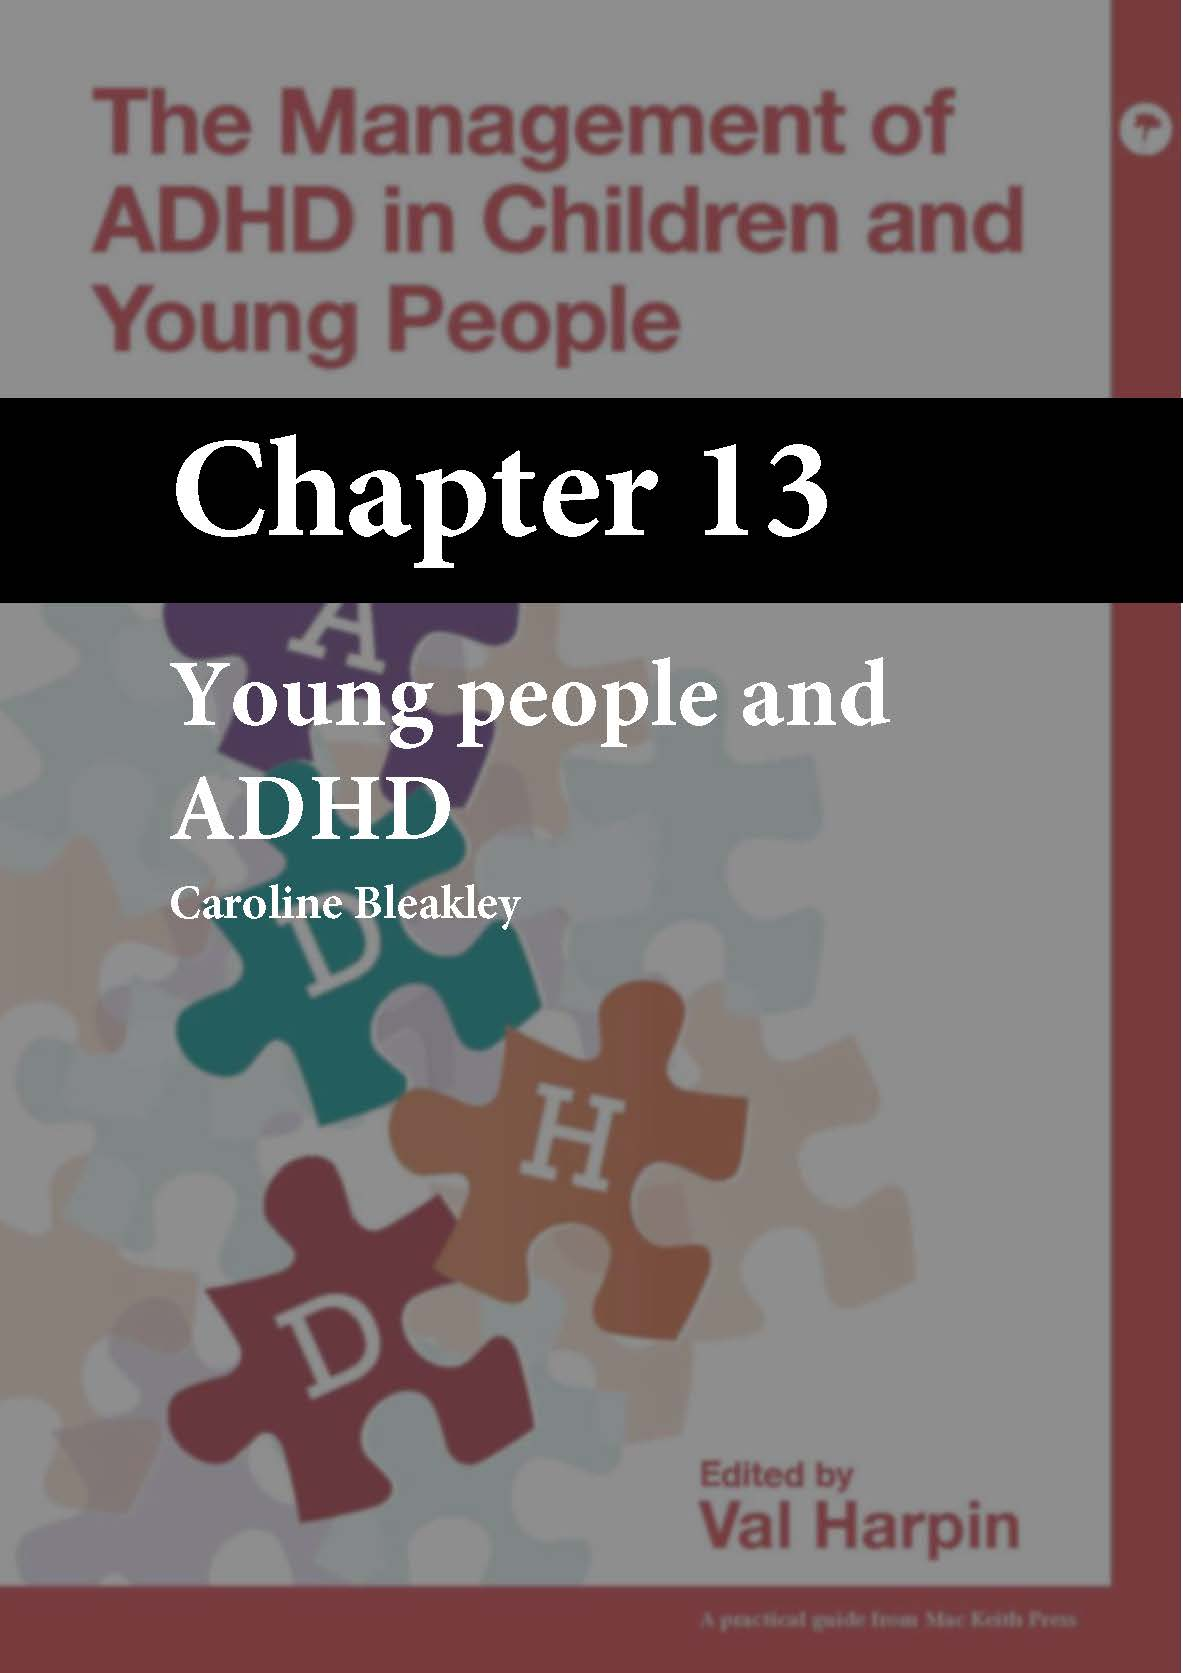 The Management of ADHD in Children and Young People, Harpin, Chapter 13 cover